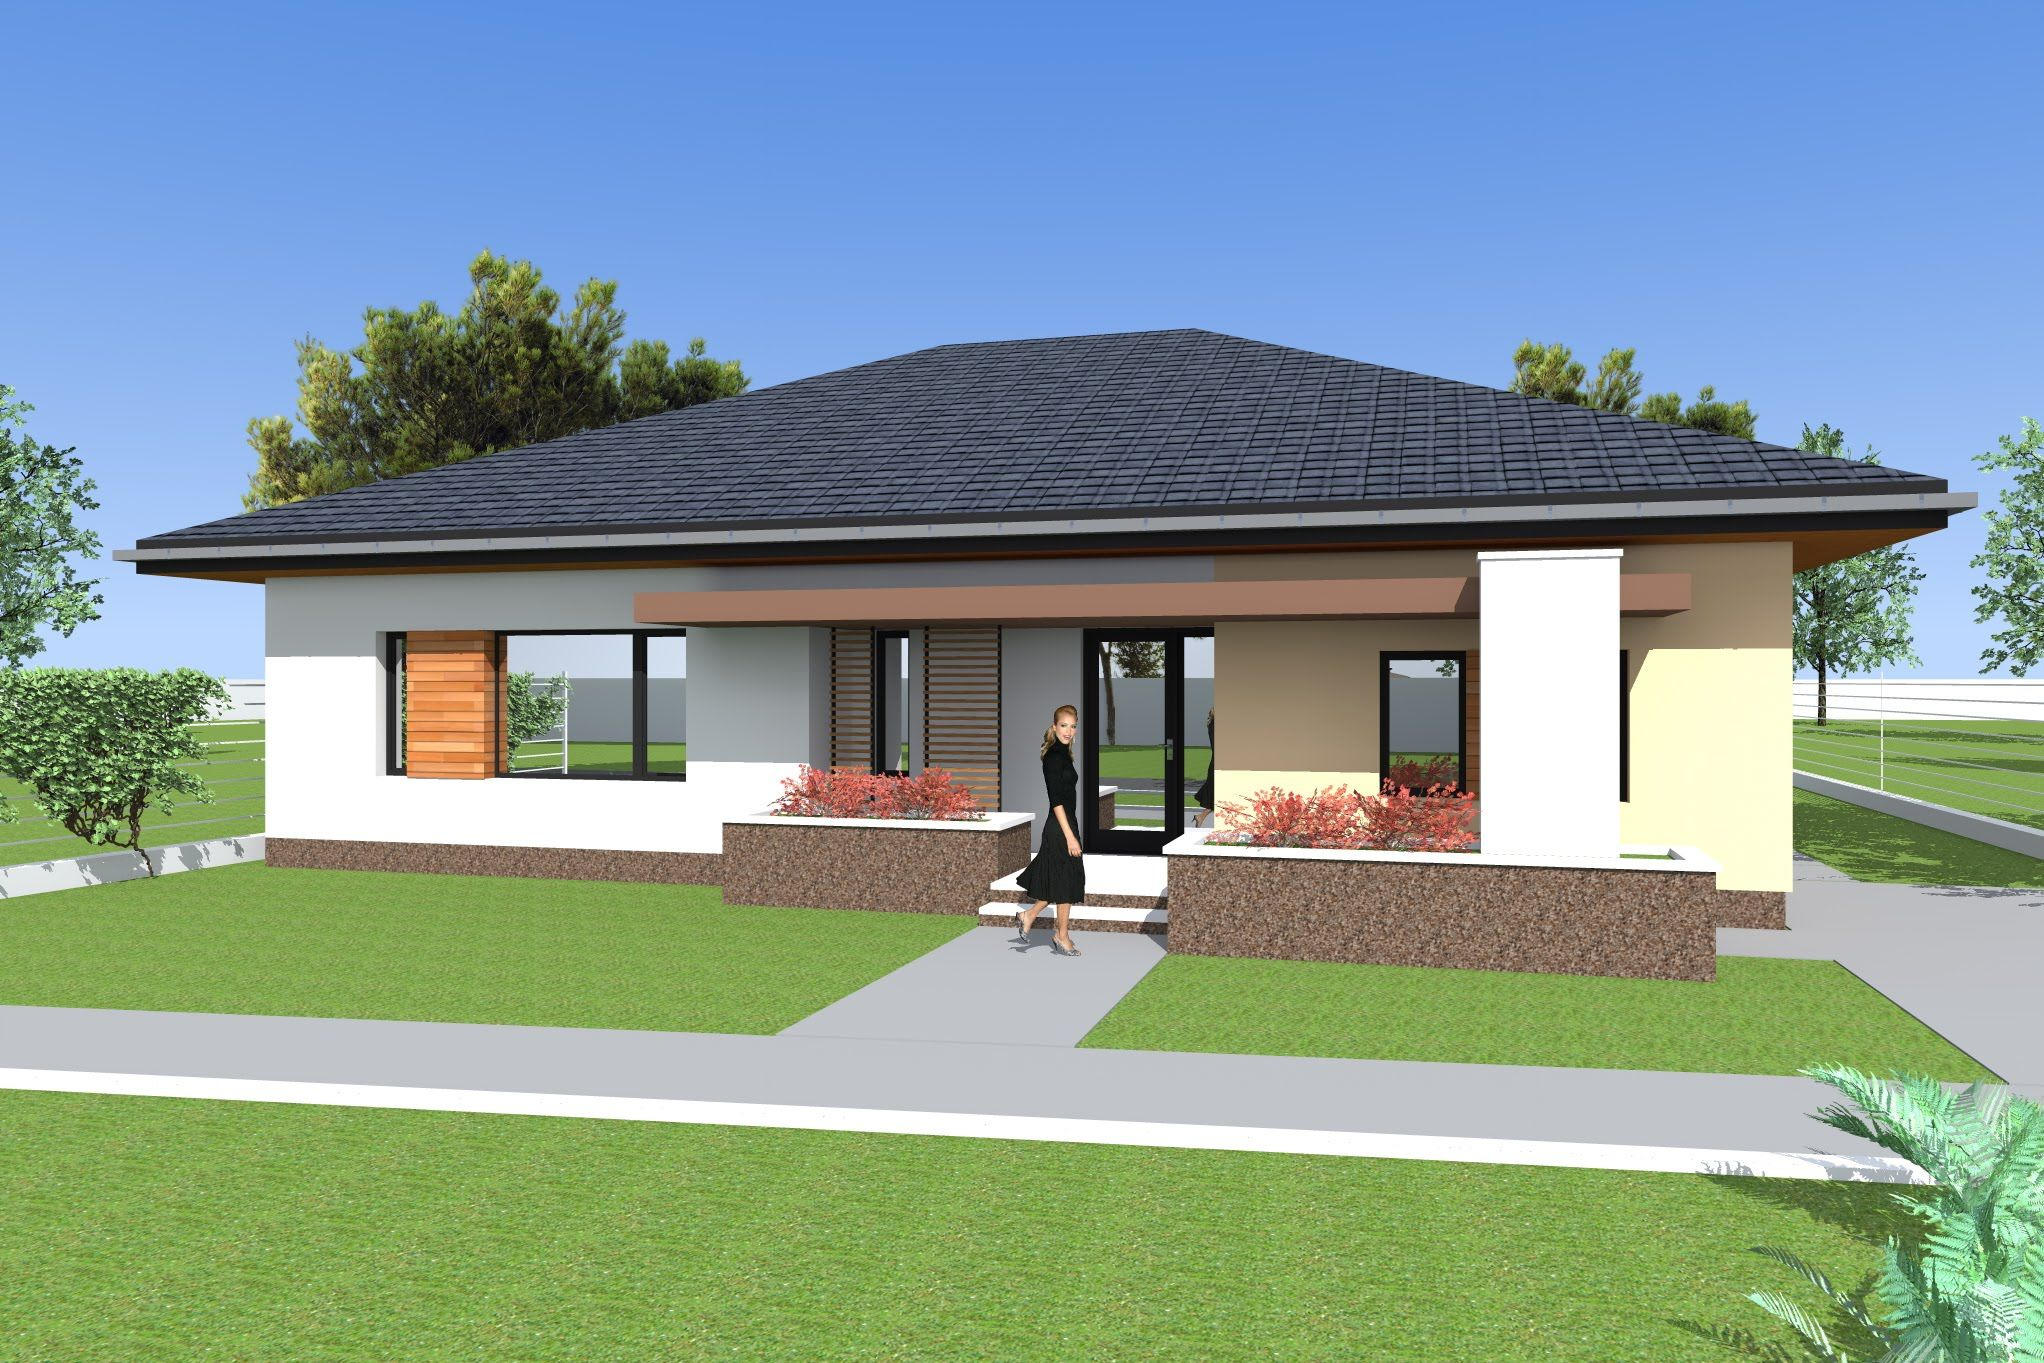 Three bedroom Bungalow design and 3d elevations. Single